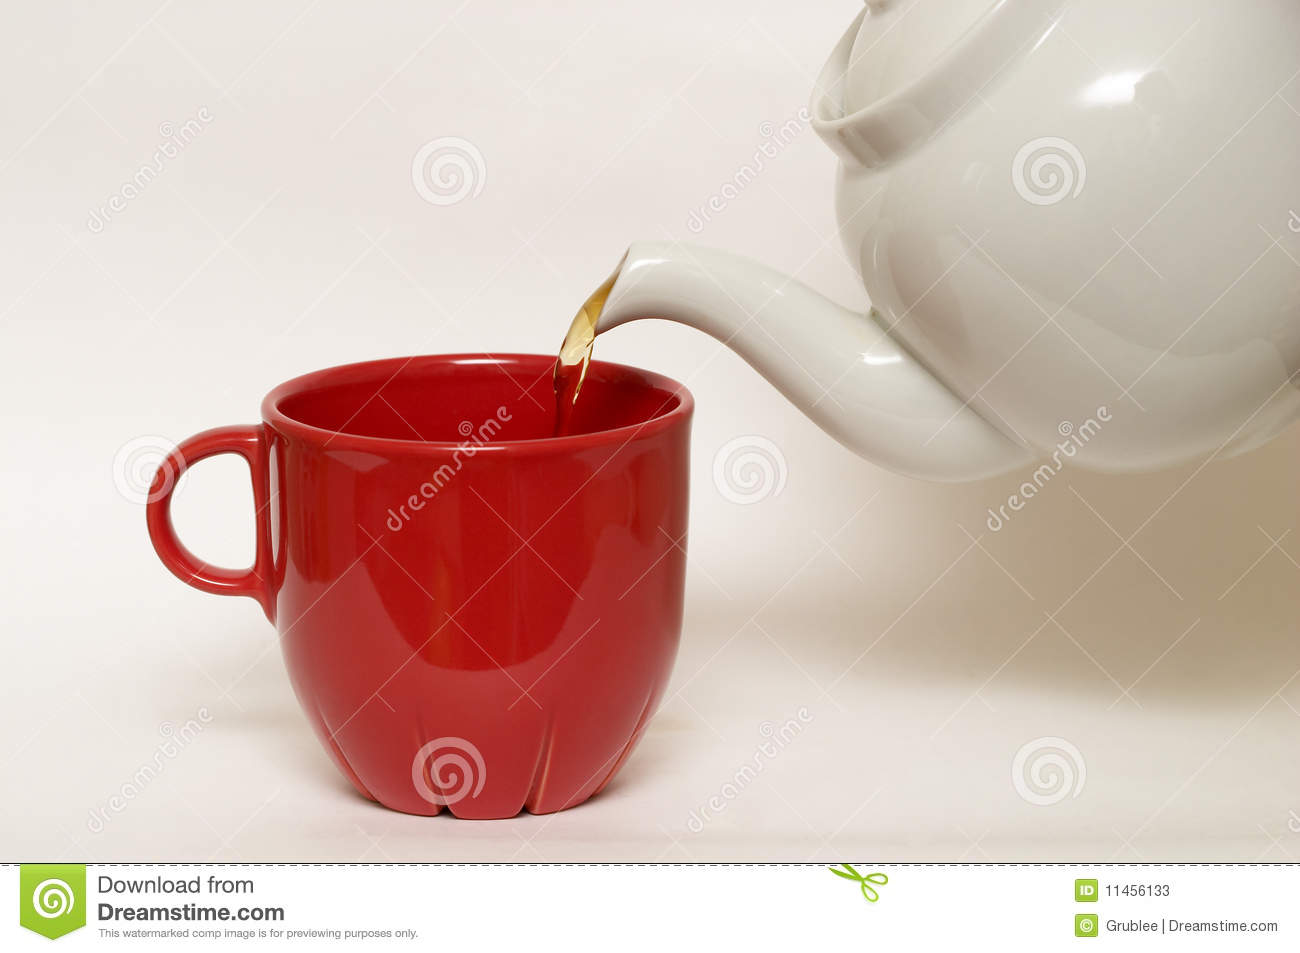 White glazed faience tea pot and red cup stock image image of